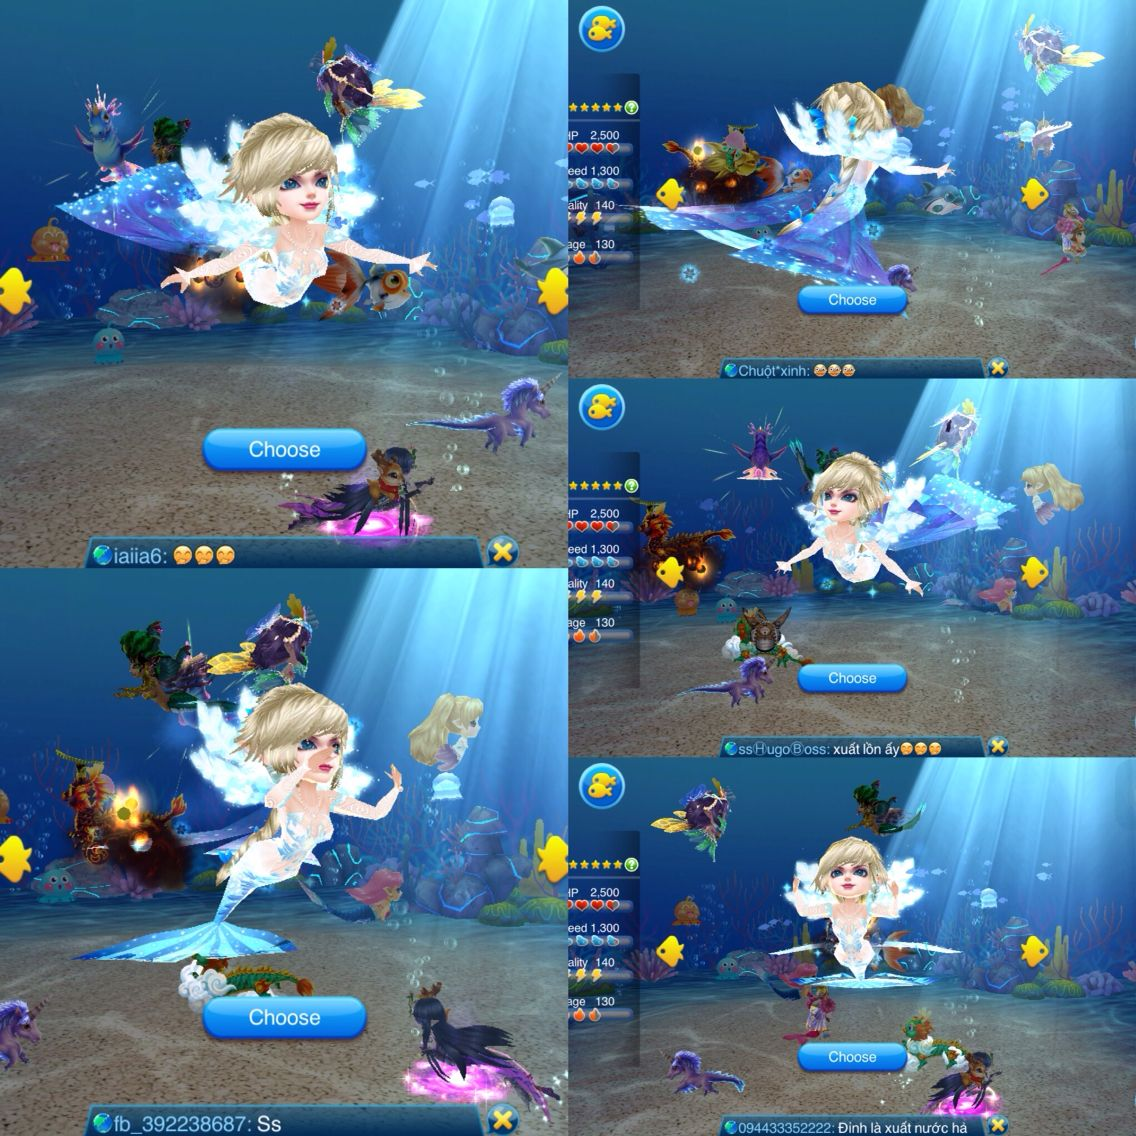 This fish snow queen cute . Follow me get many pic more about game Fish Festival #fish #festival #gameios #gameandroid #mobile #choica, #choi, #ca